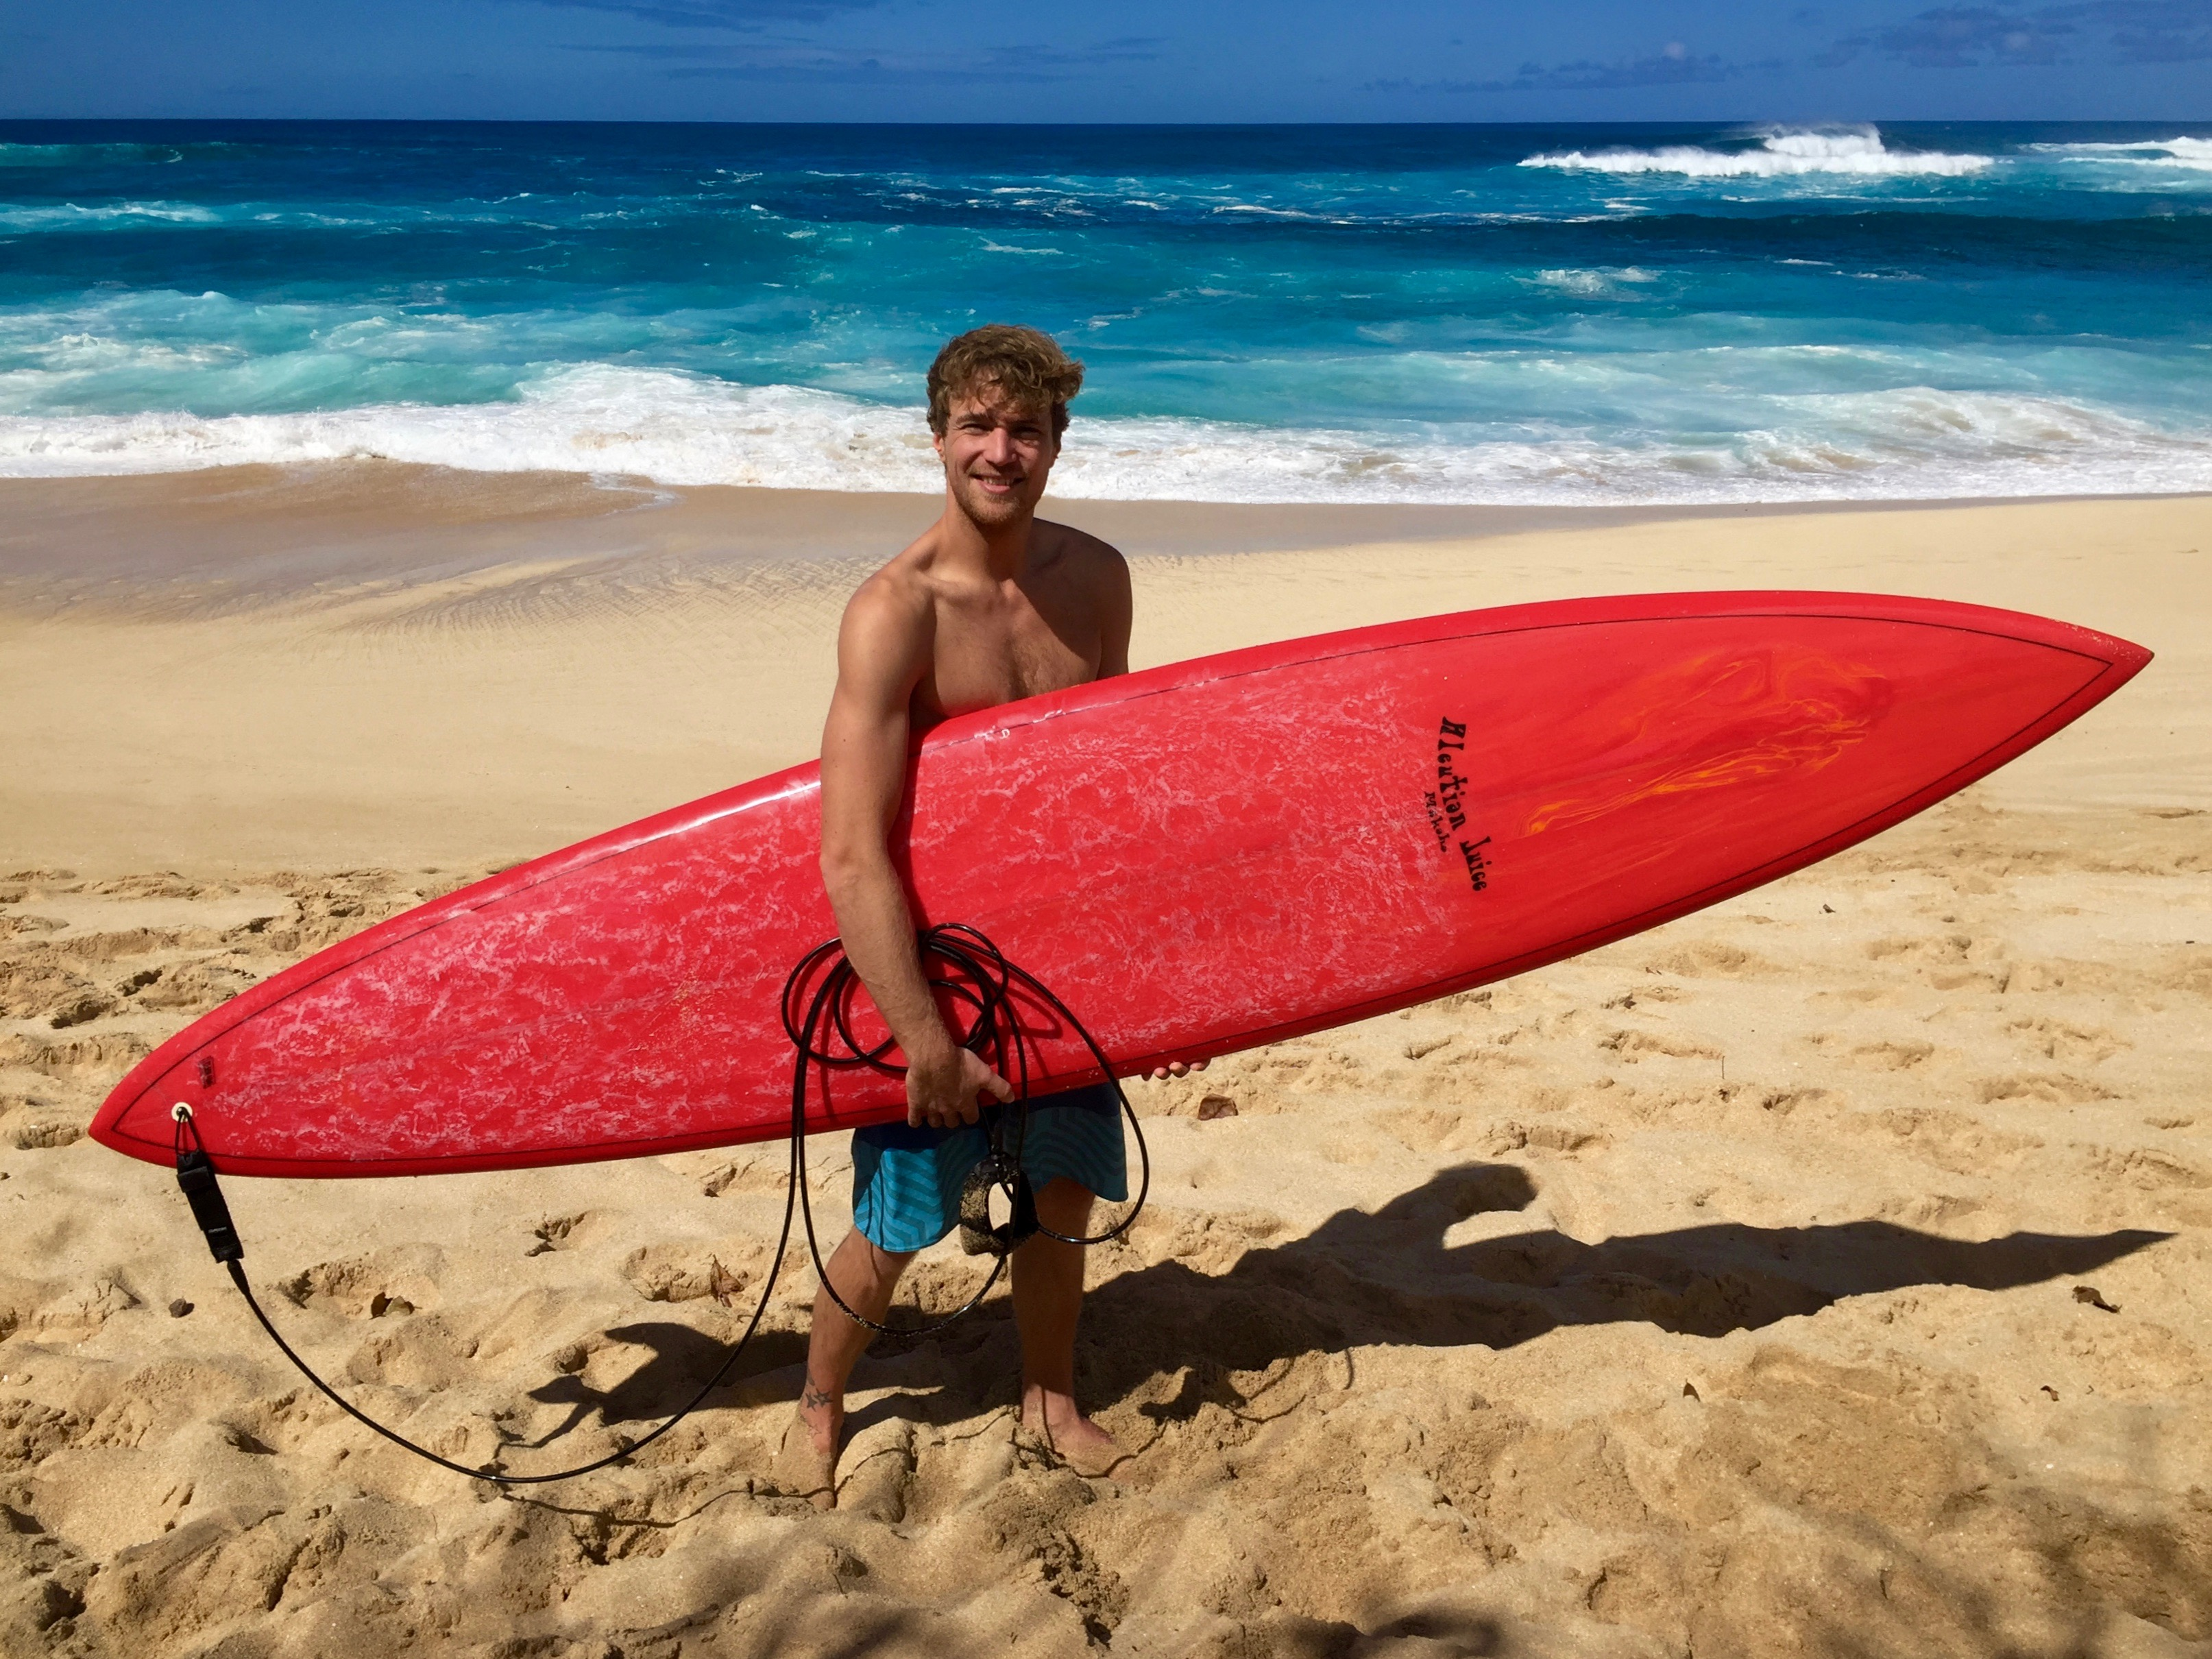 Interview: When surfing sparks entrepreneurship